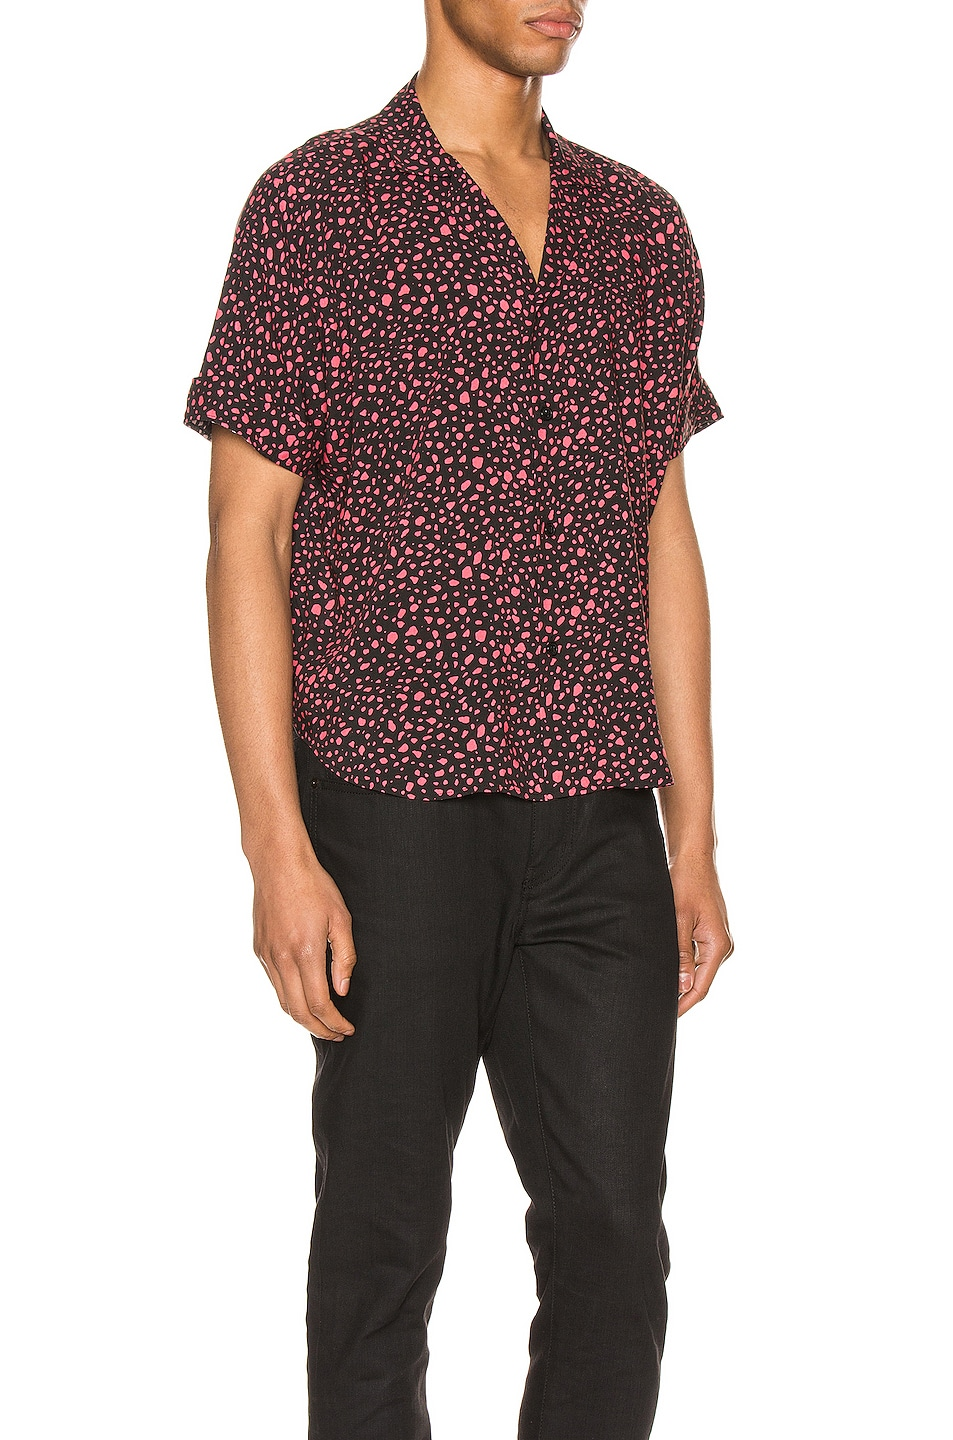 Image 2 of Saint Laurent Short Sleeve Shirt in Black & Fuchsia